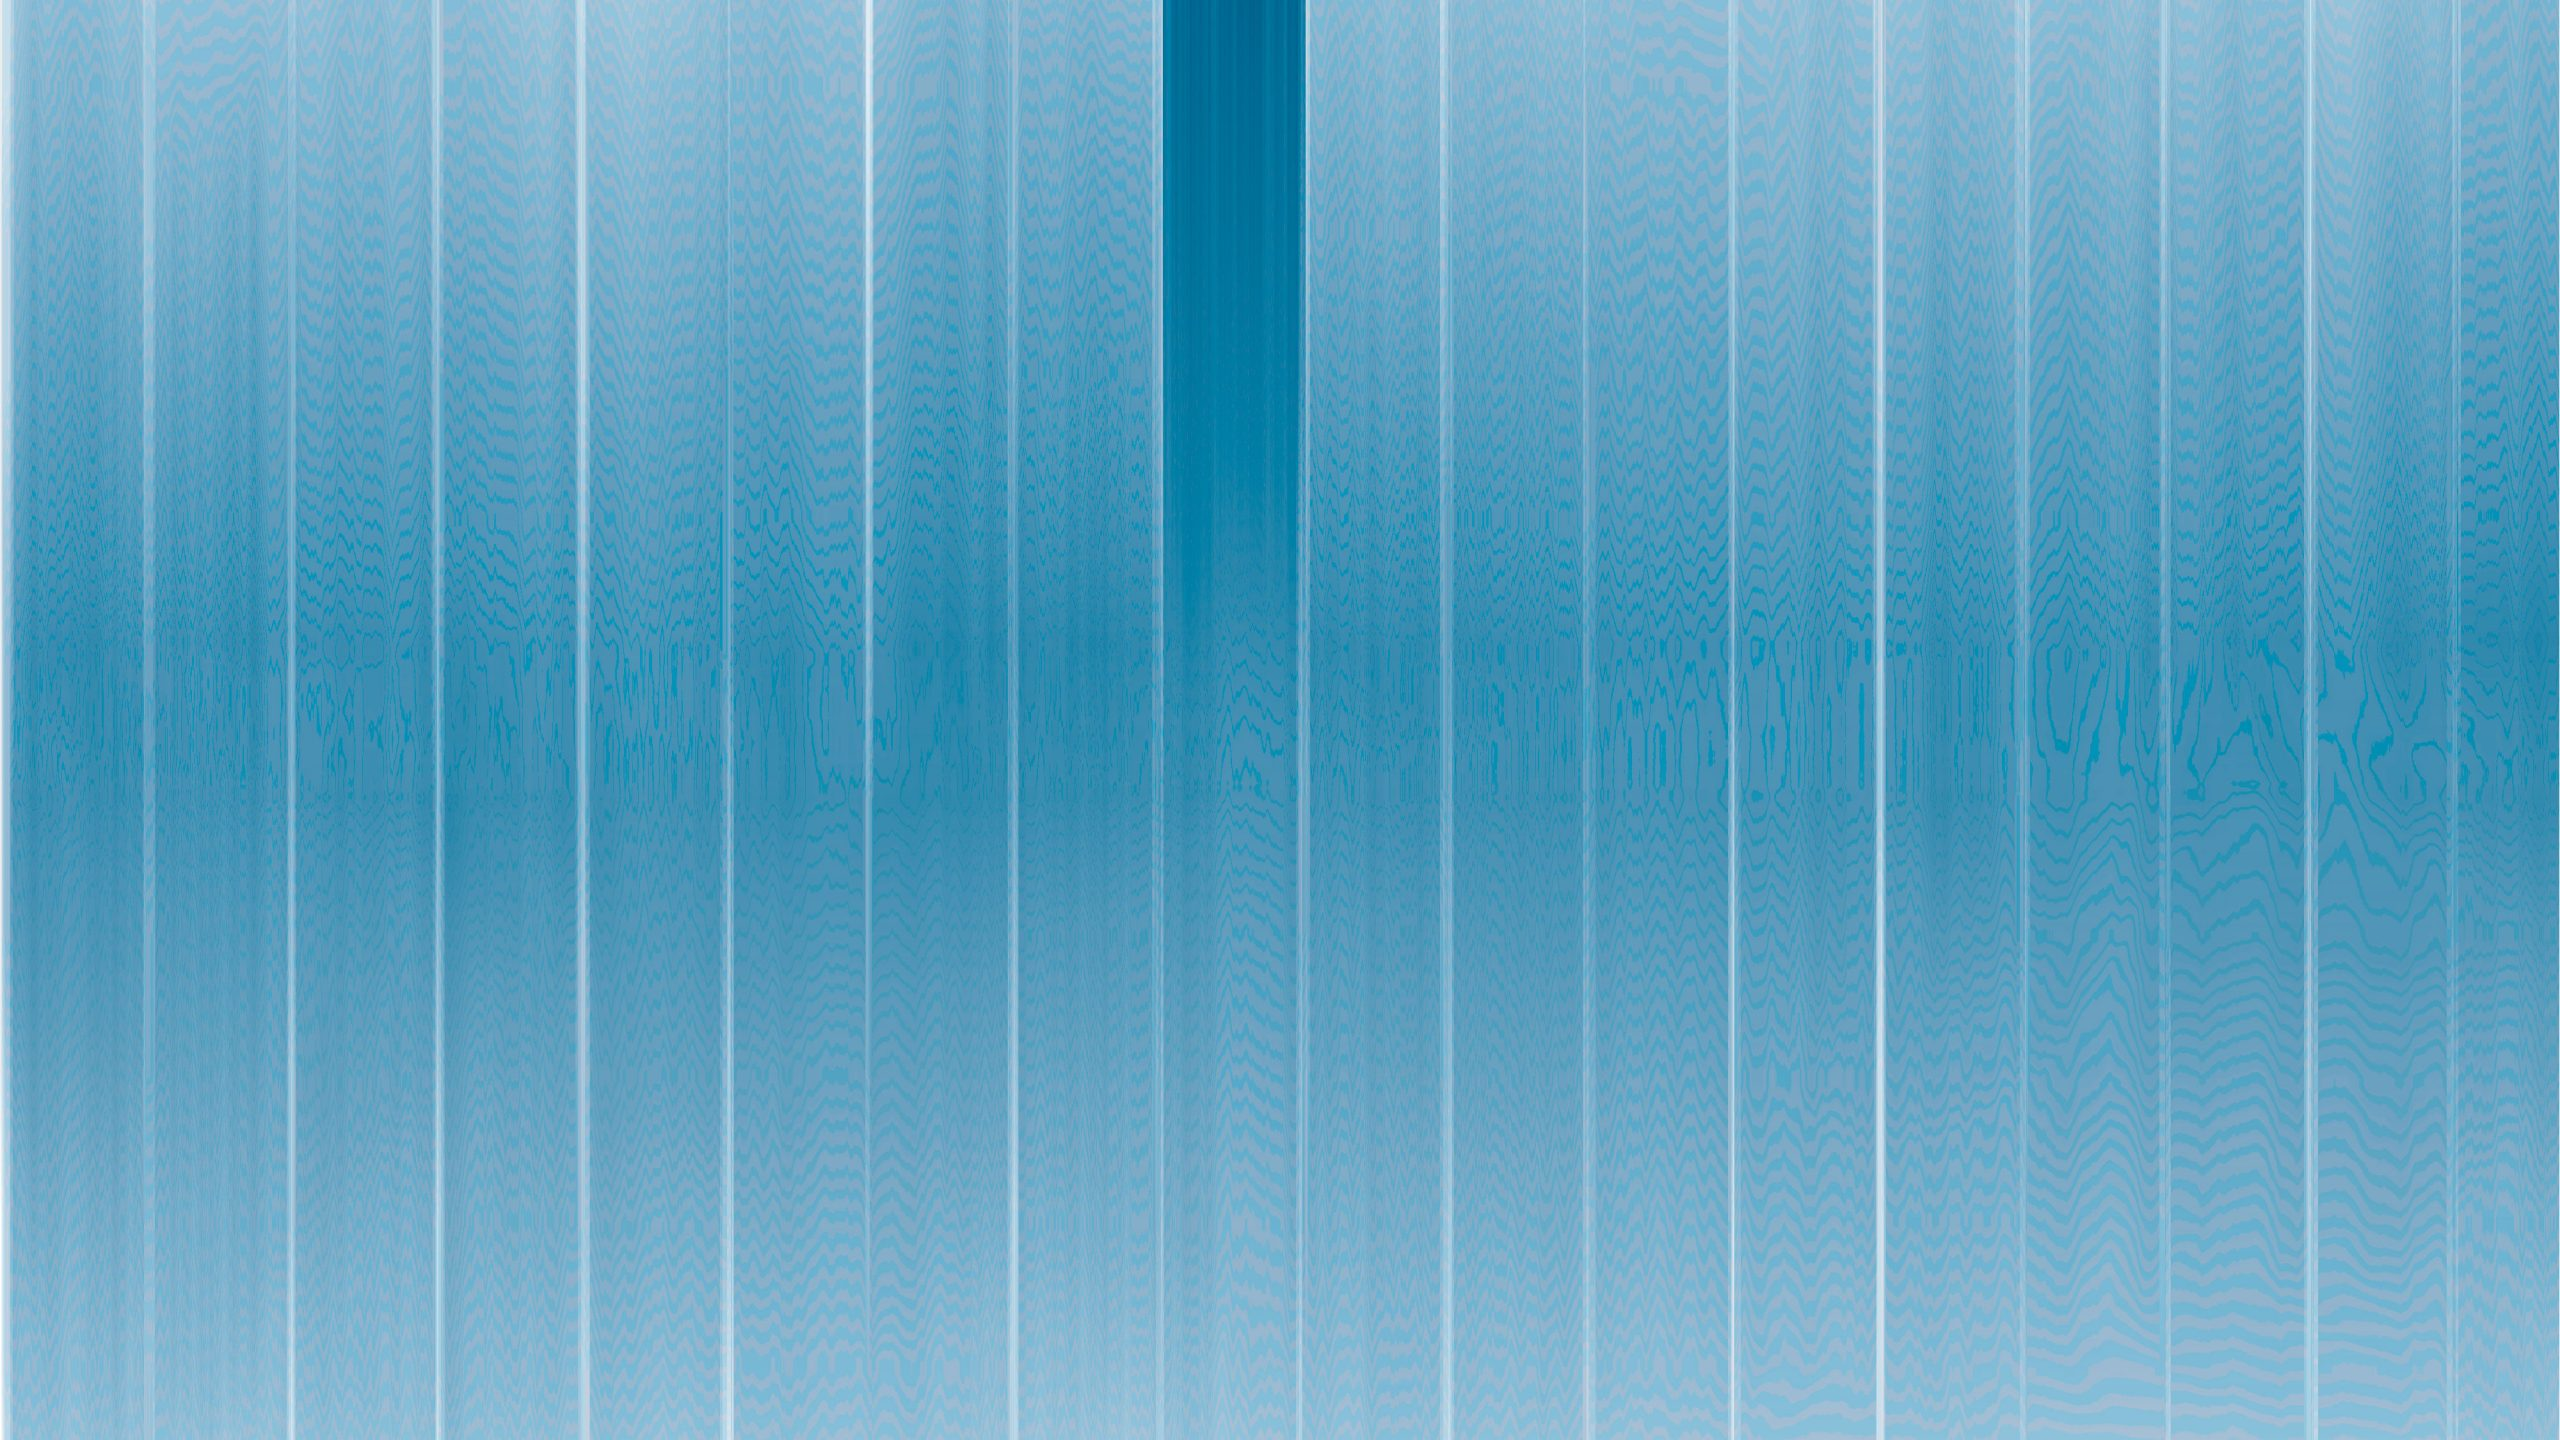 Skyblue lines abstract wallpaper